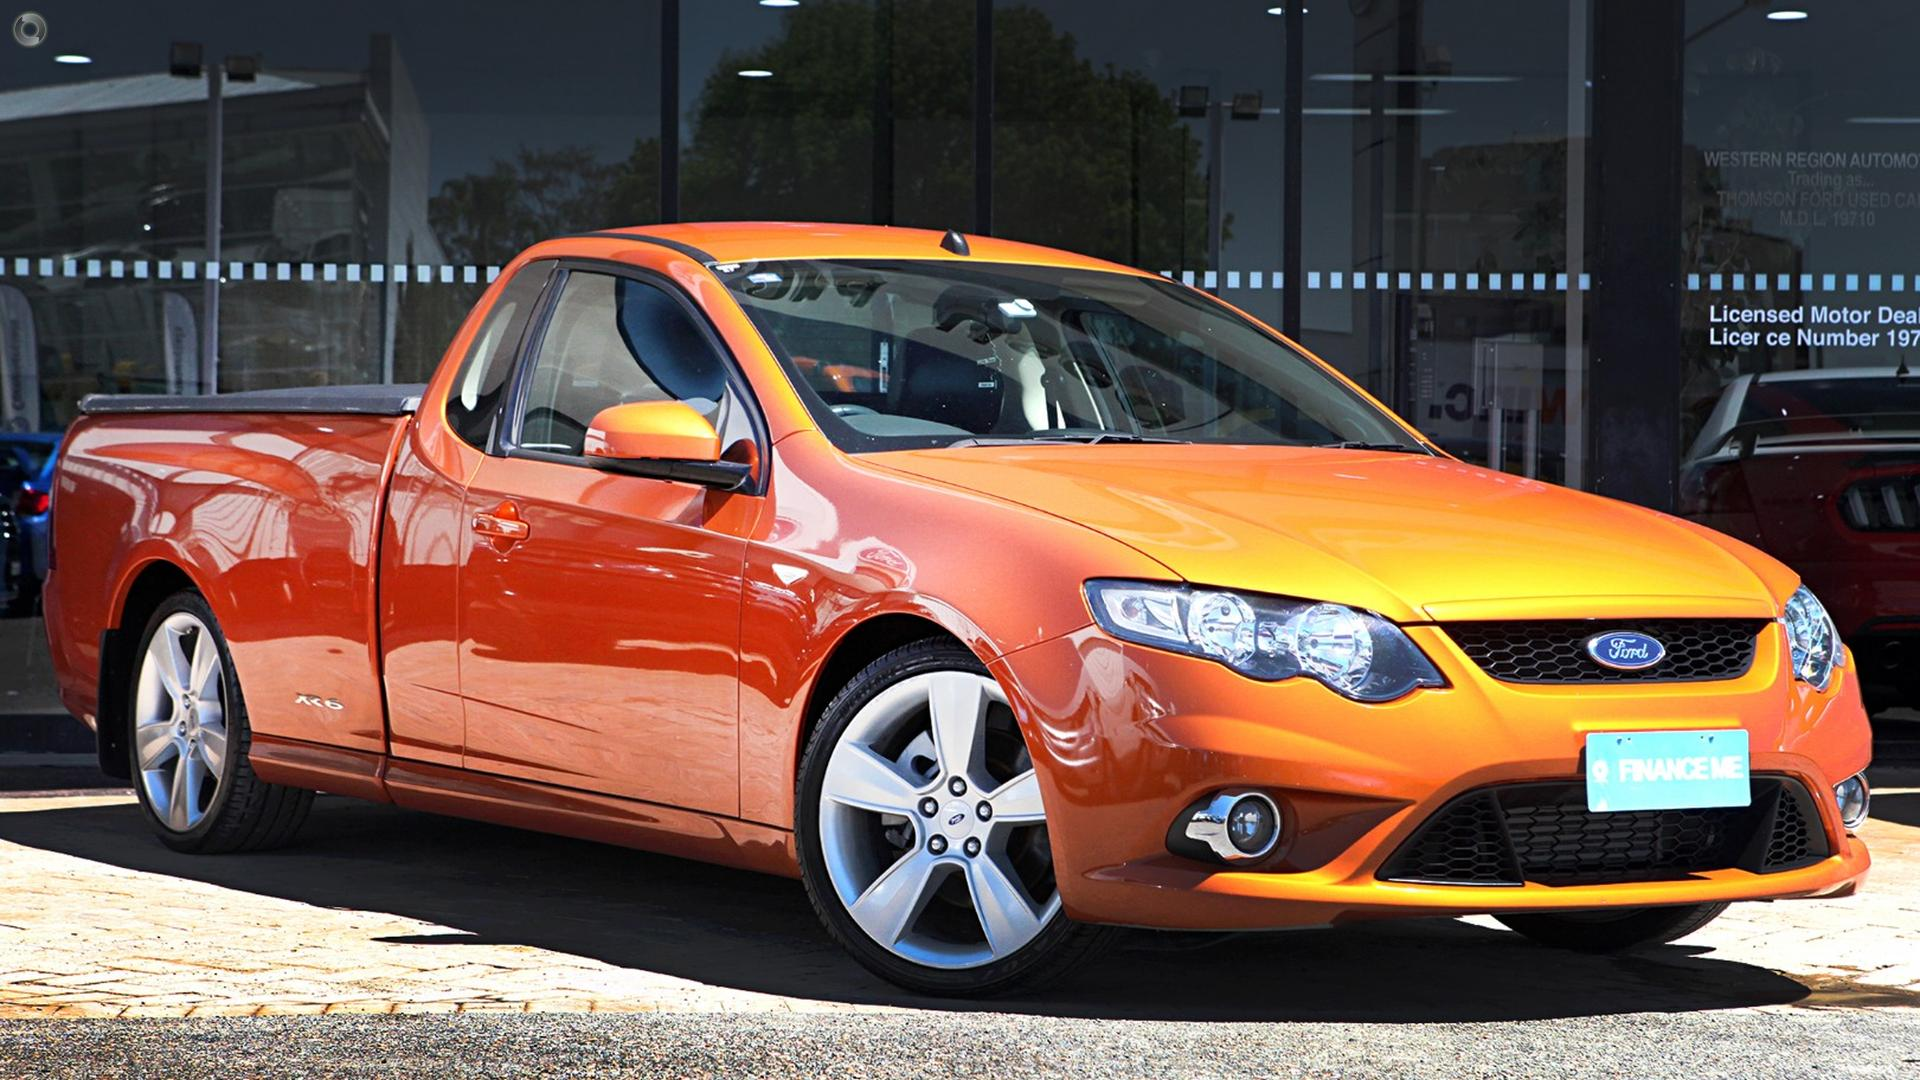 2011 Ford Falcon Ute XR6 Turbo FG